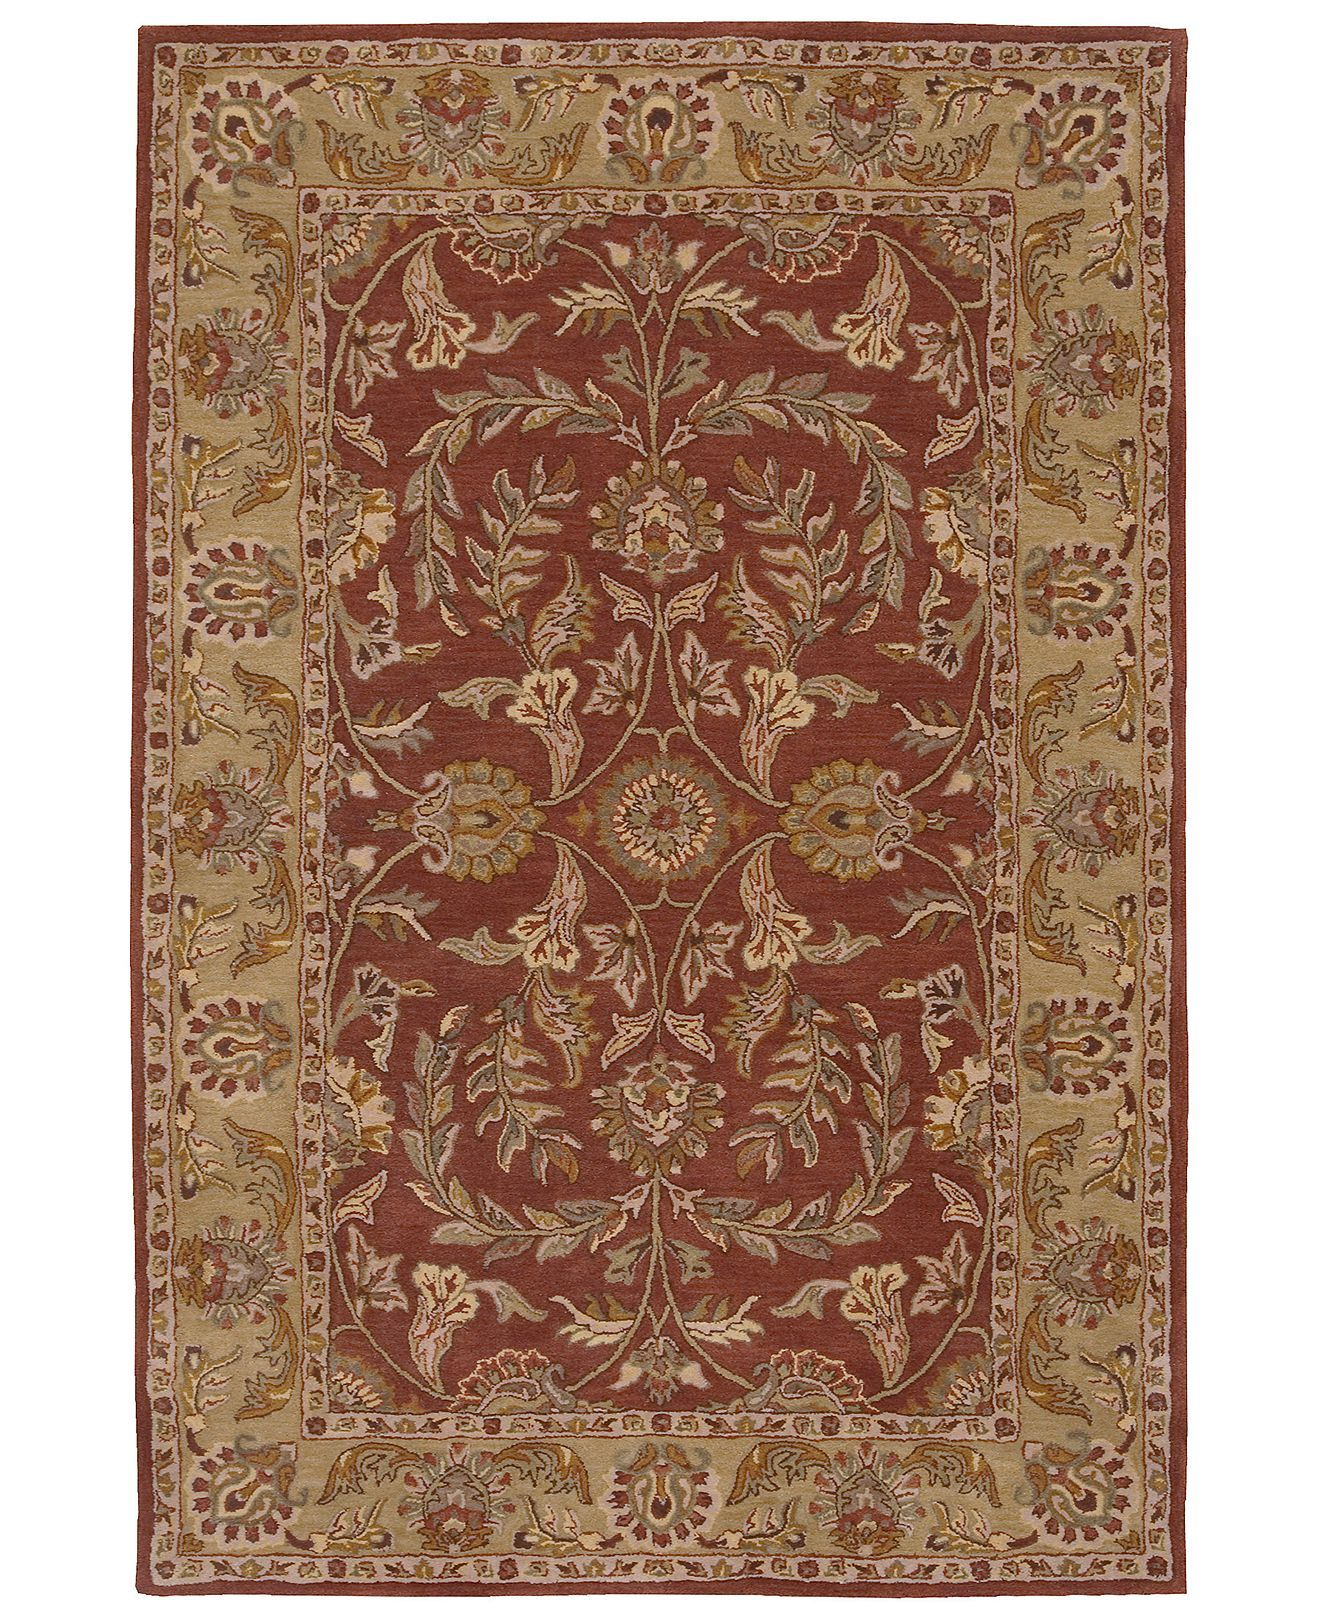 Manufacturer S Closeout Nourison Area Rug India House Ih58 Rust 8 X 10 6 8 X 10 Rugs Rugs Macy S India House Area Rugs Rugs Home inspired by india rug